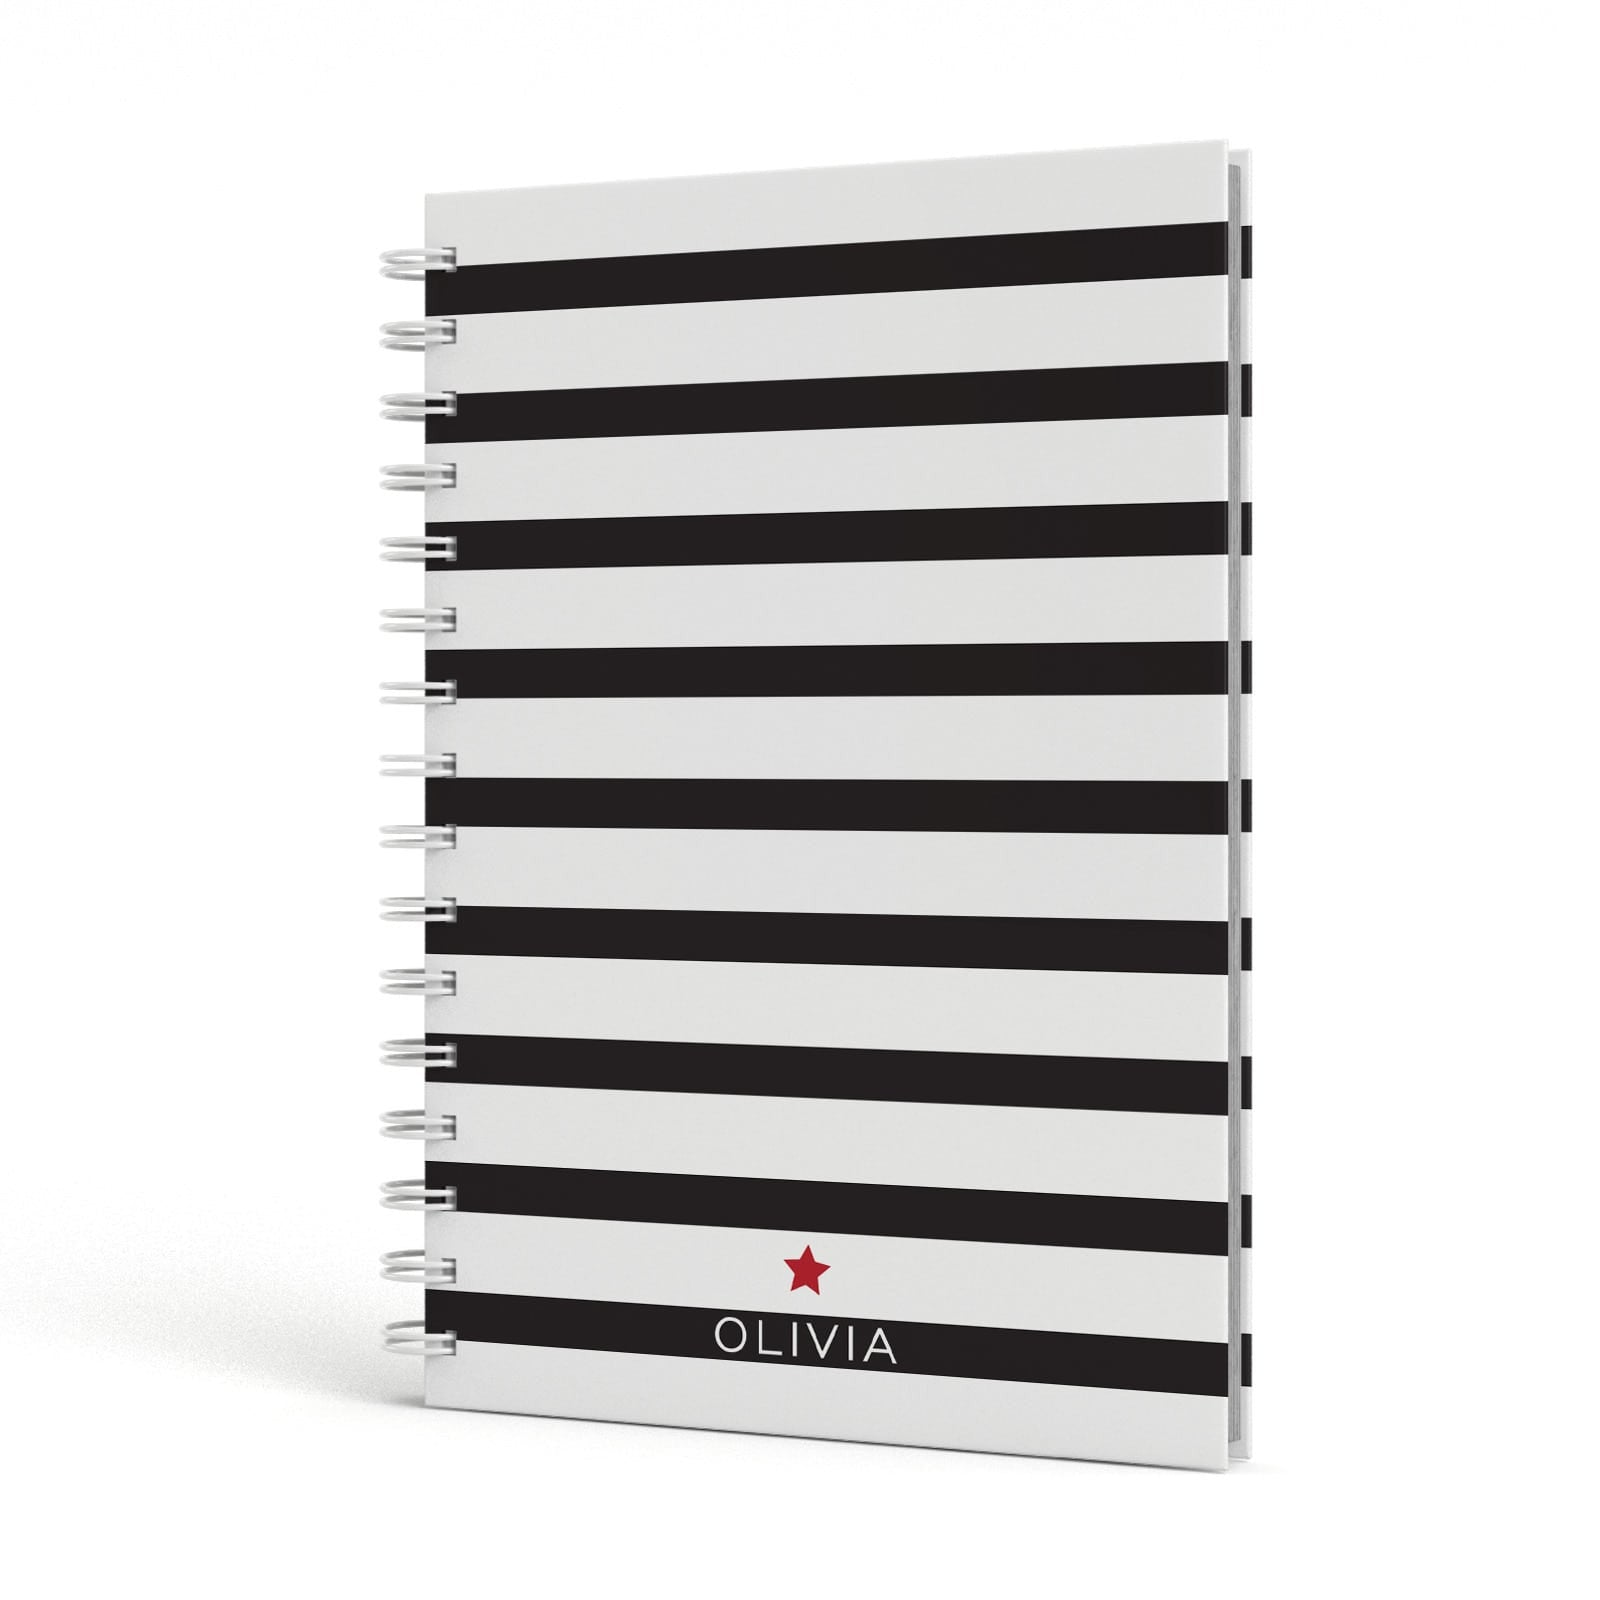 Personalised Name Black White A5 Hardcover Notebook Side View